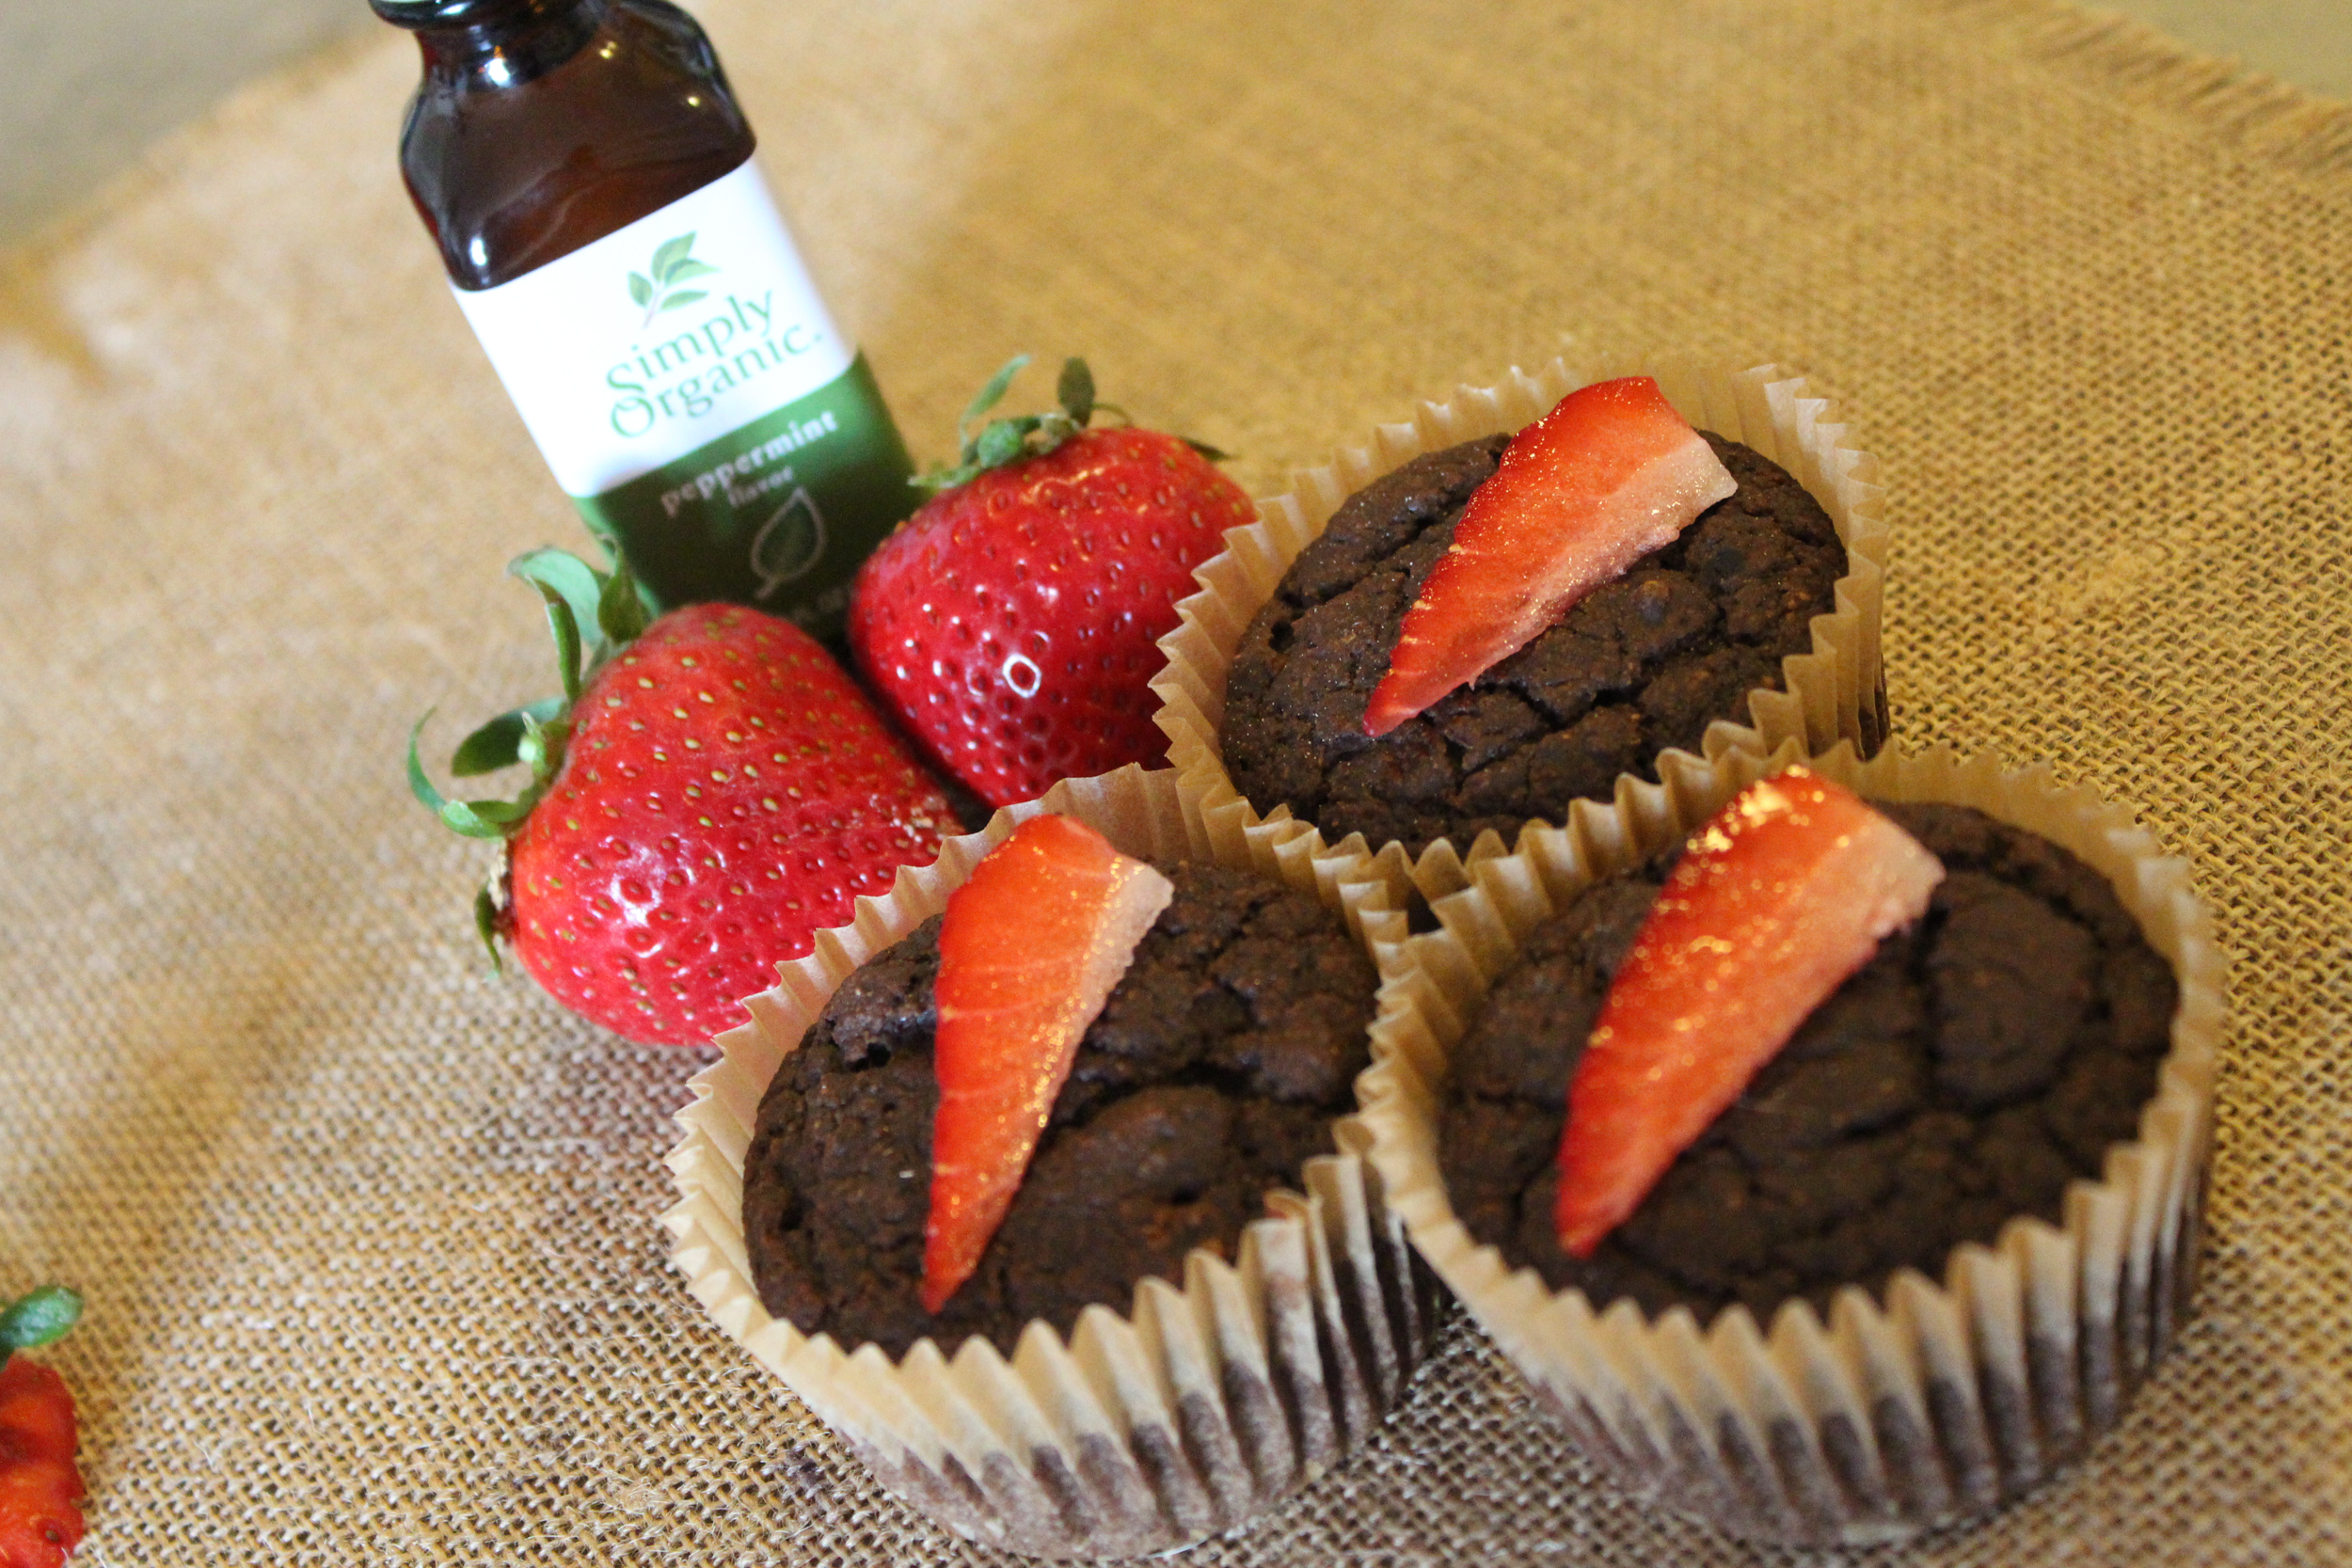 We made cupcakes, too, that are even better for sharing. No icing, no problem. We topped with strawberry quarters and 2 drops of organic peppermint oil.